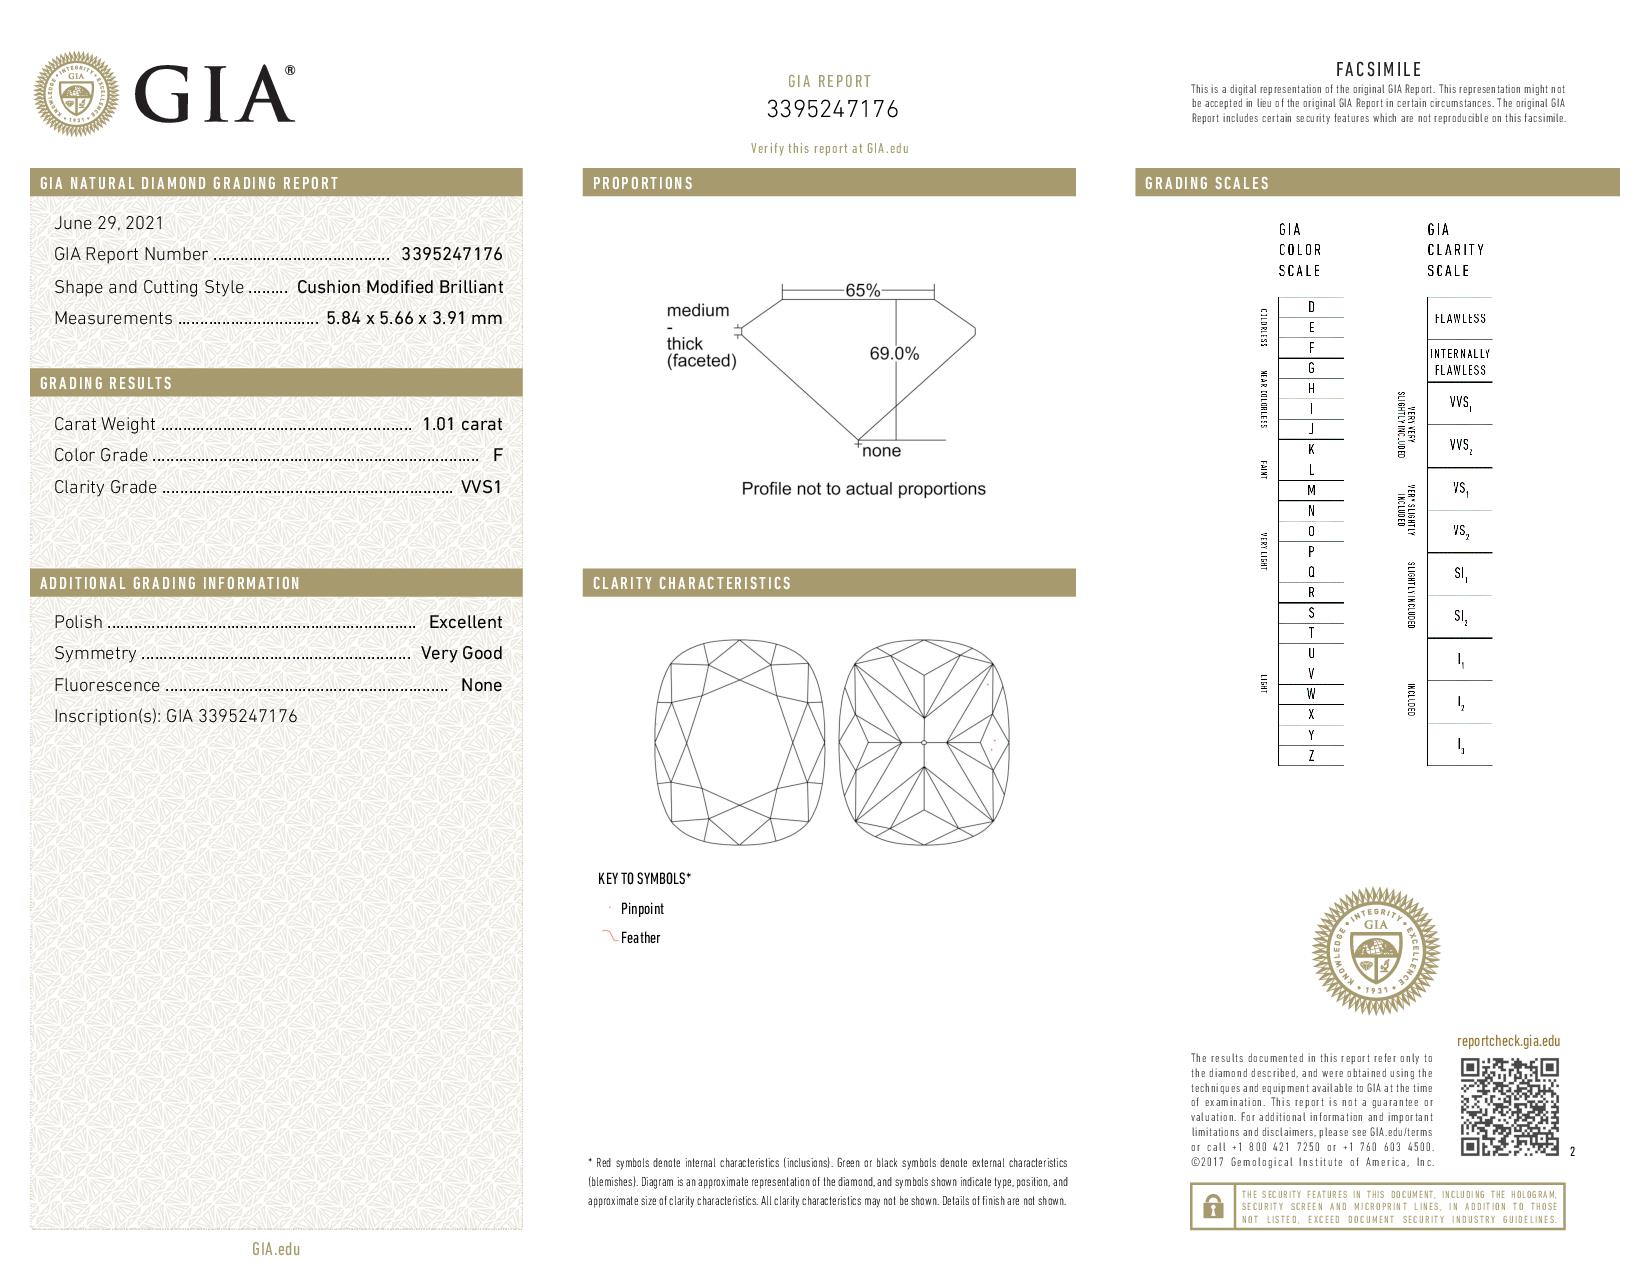 This is a 1.01 carat cushion shape, F color, VVS1 clarity natural diamond accompanied by a GIA grading report.